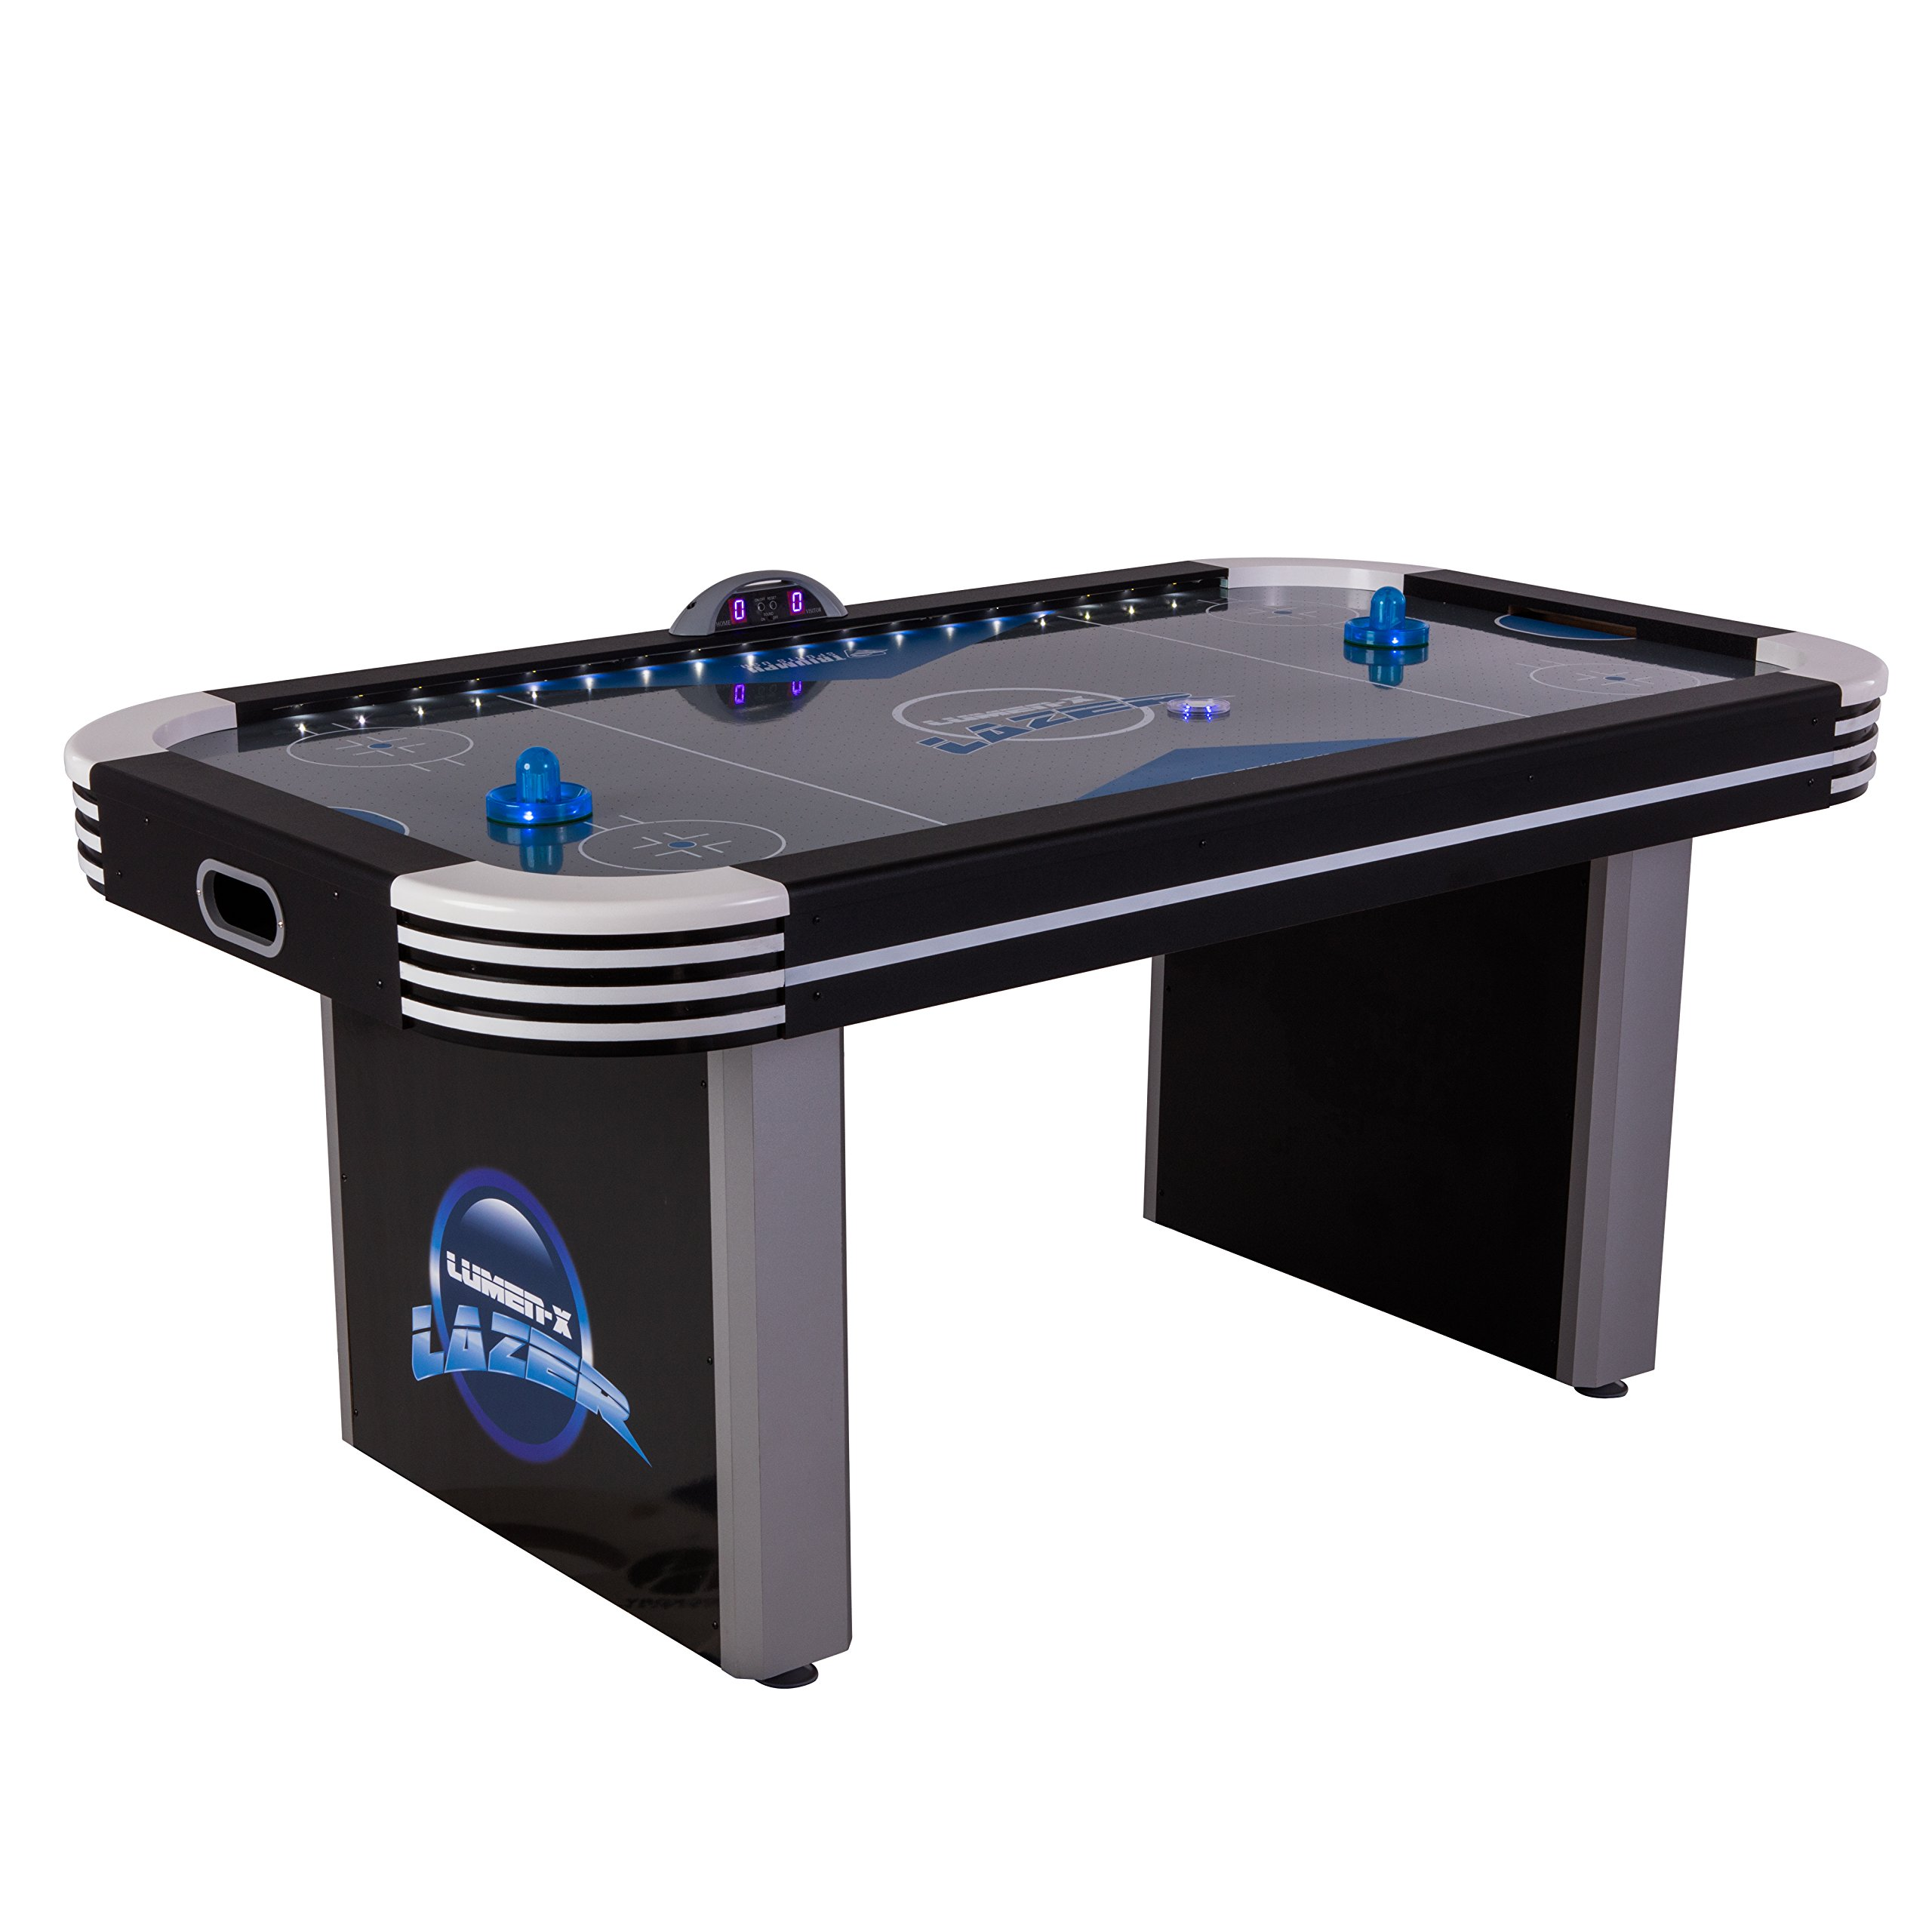 New - Triumph Lumen-X Lazer 6' Air Hockey Table by Triumph